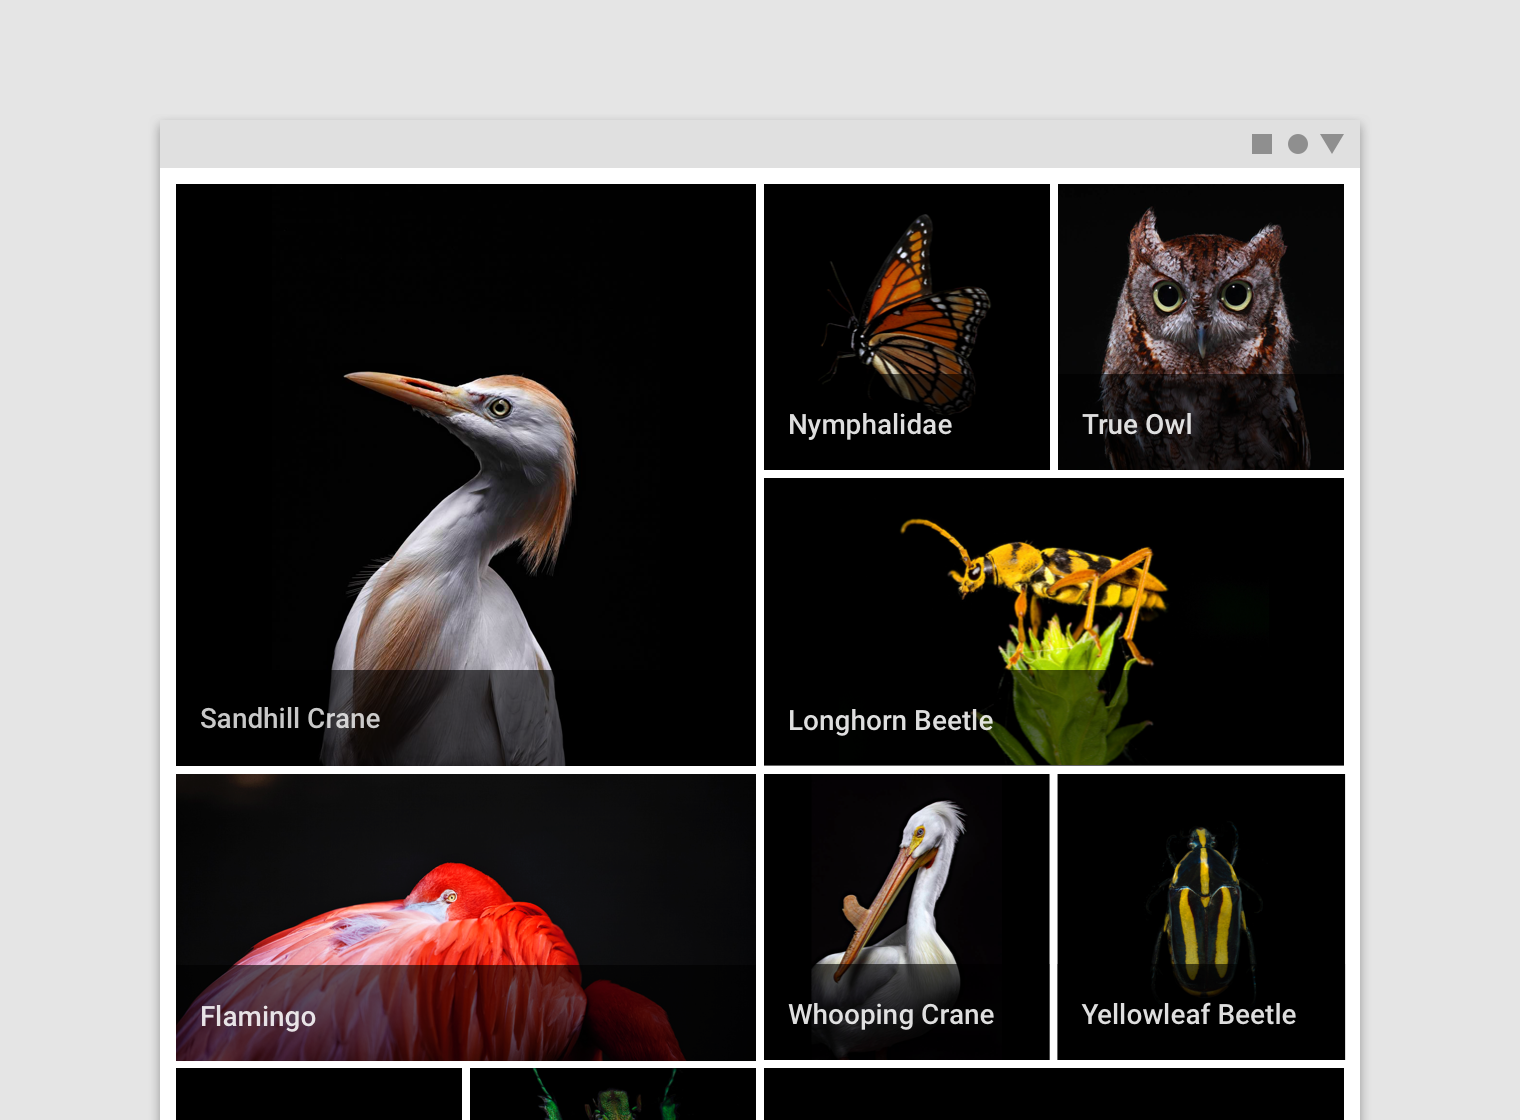 Image lists - Material Design